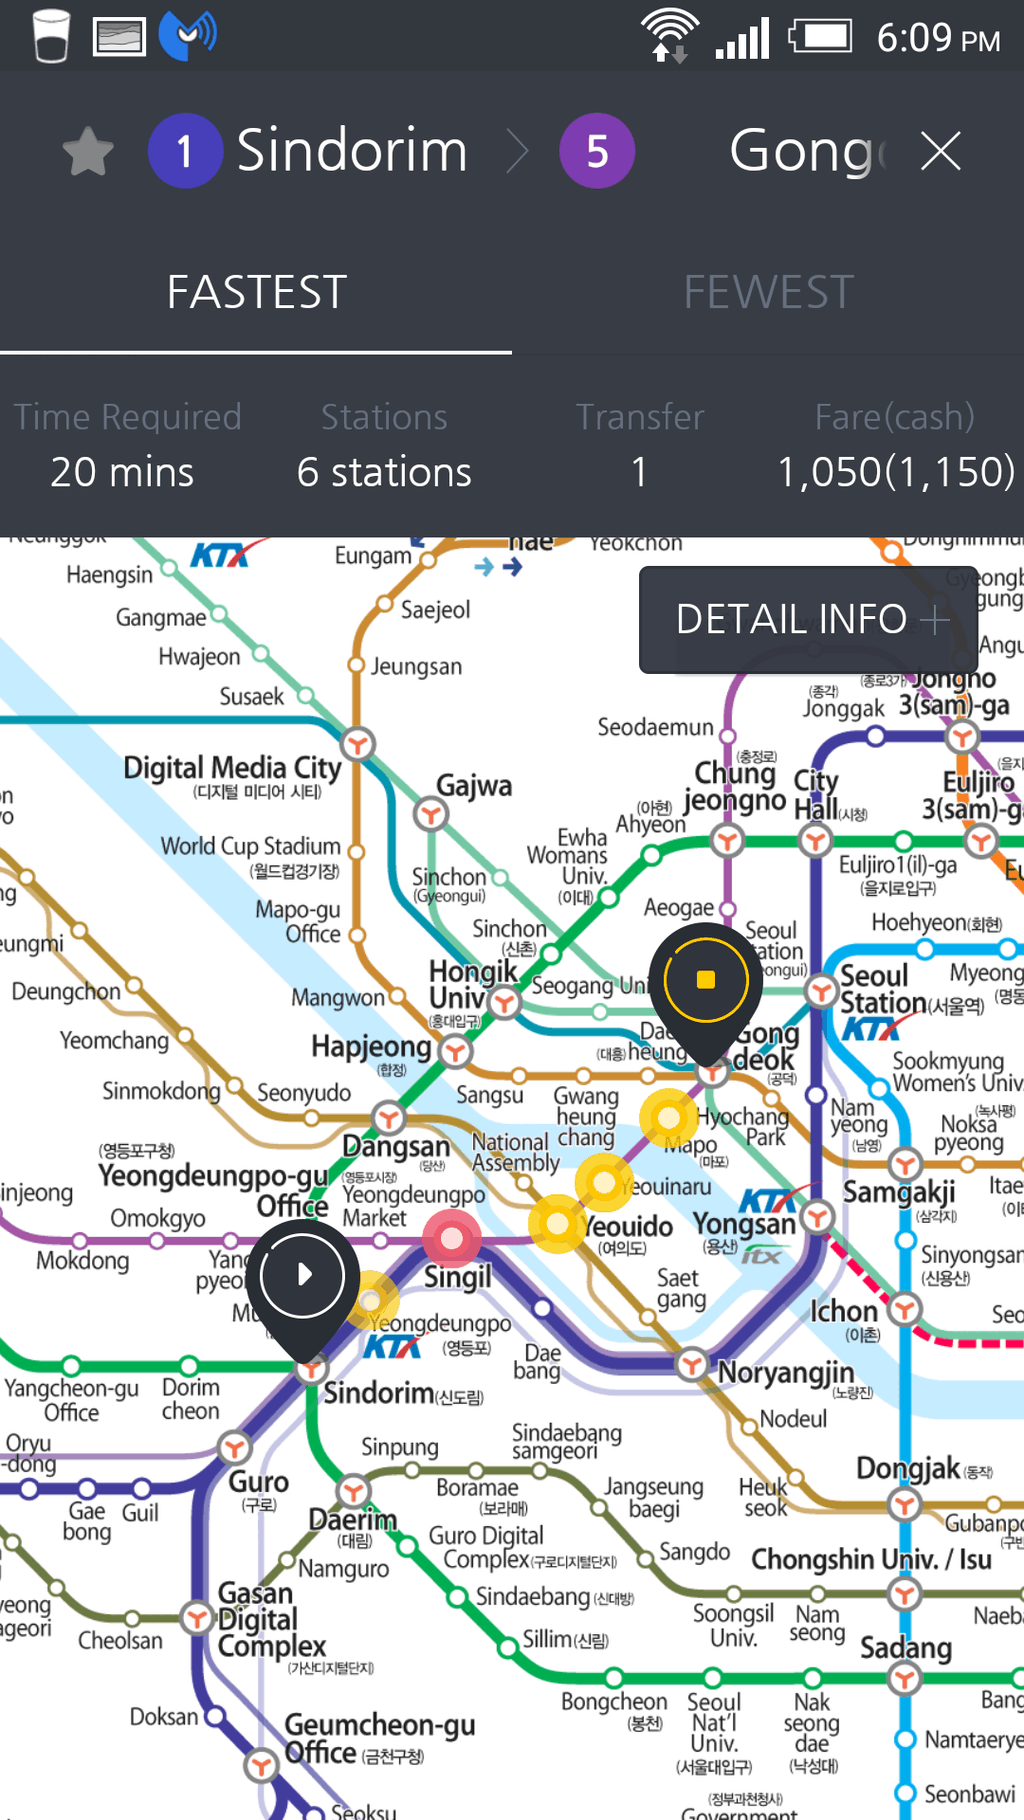 fastest route result on subway korea app